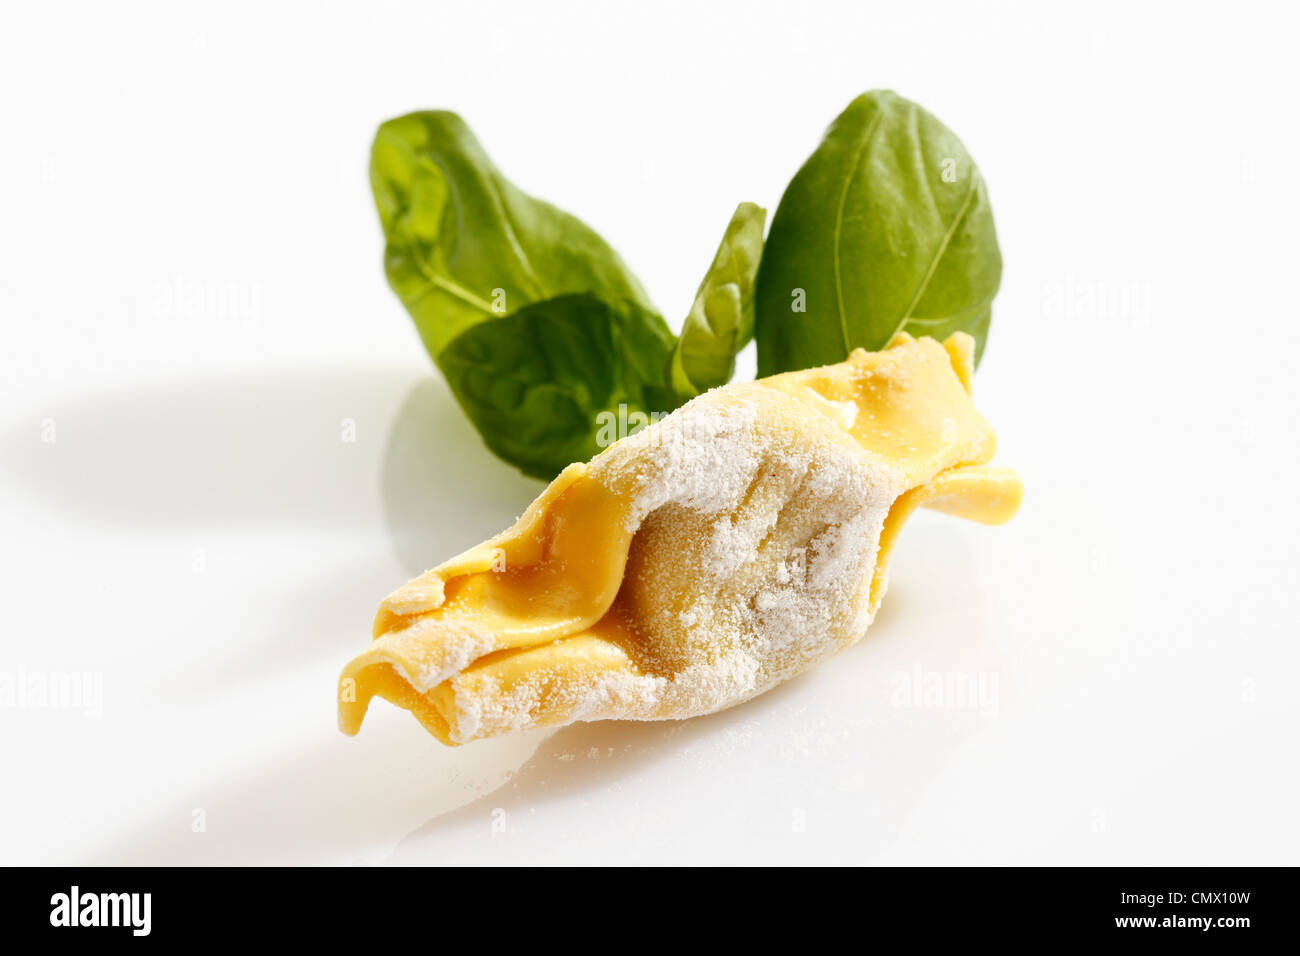 Candy shape pasta with riceflour and basil leaf on white background - Stock Image